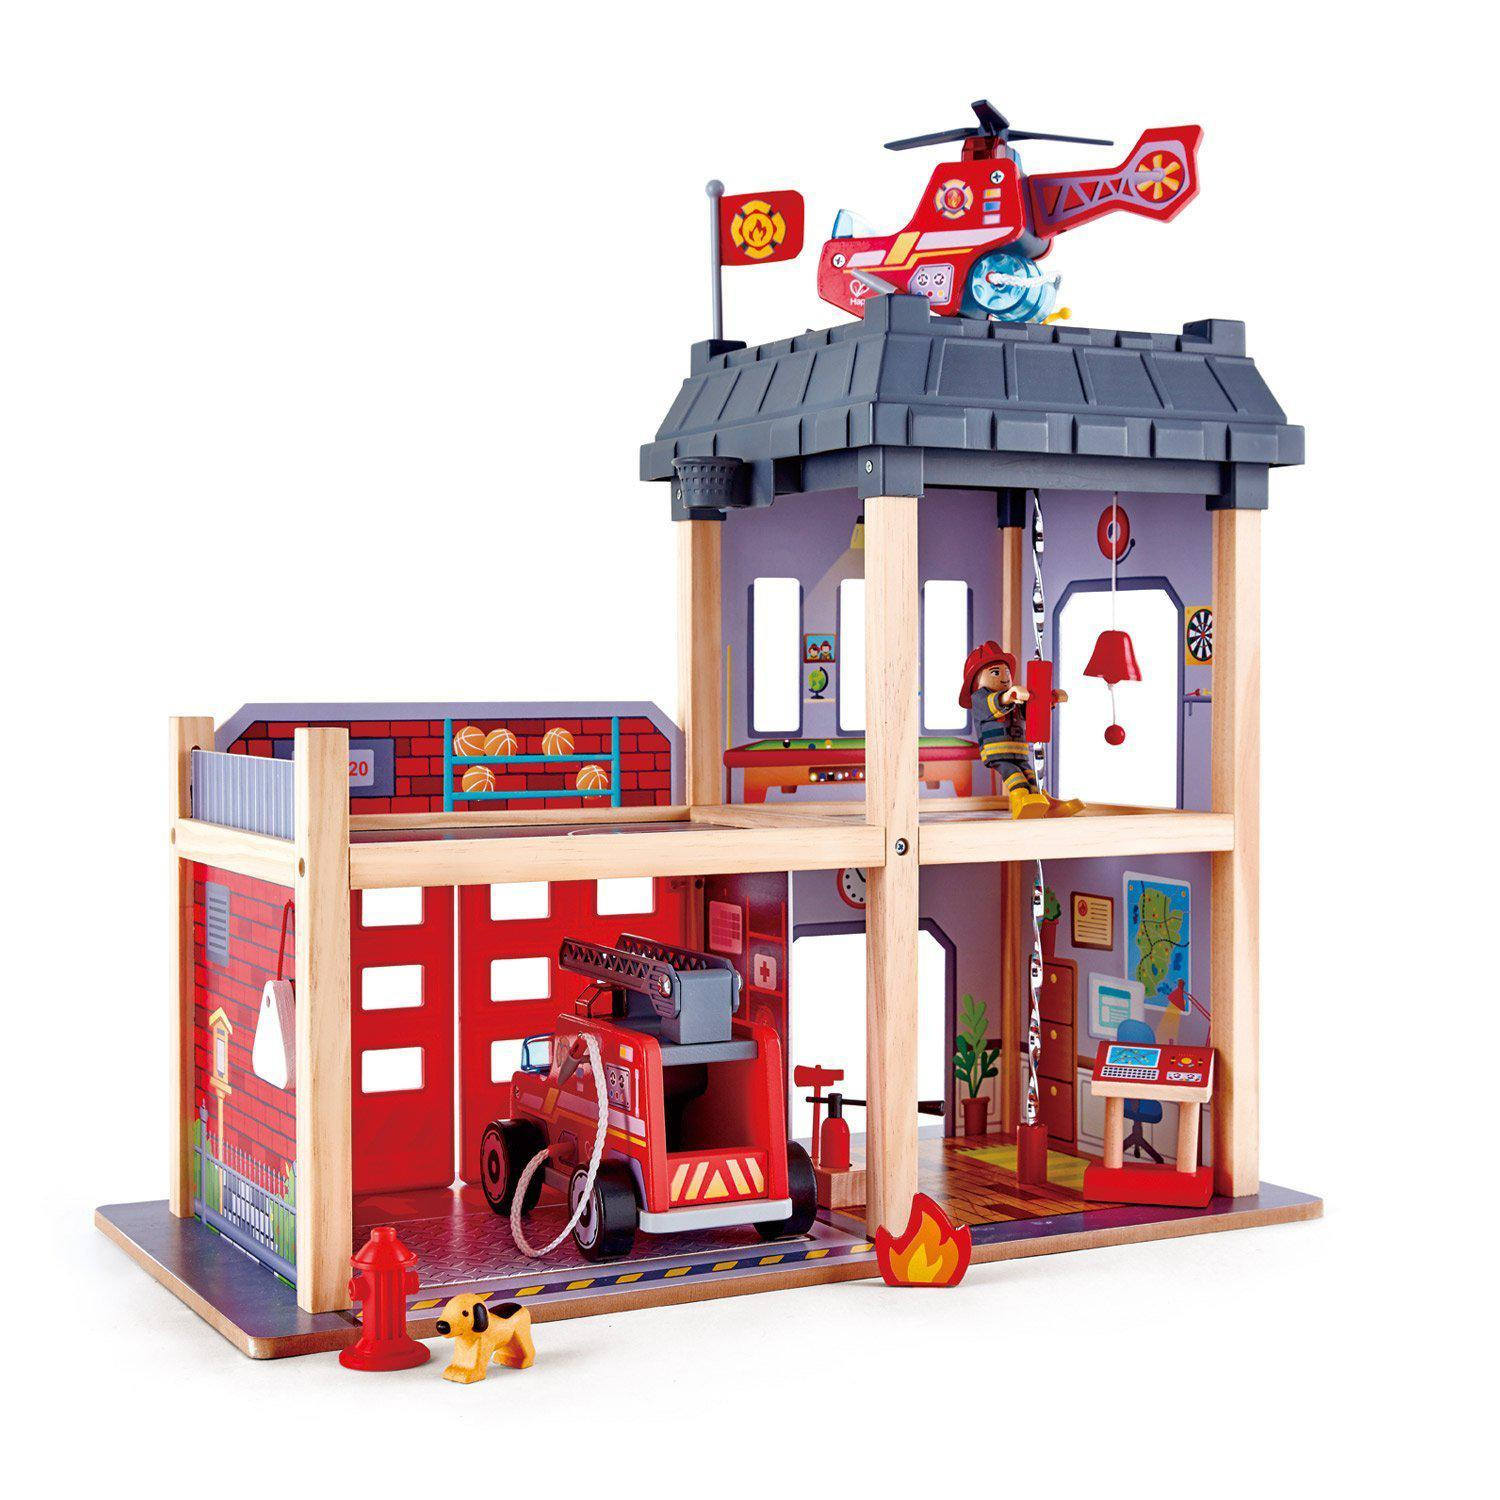 Hape Large Wooden Fire Station